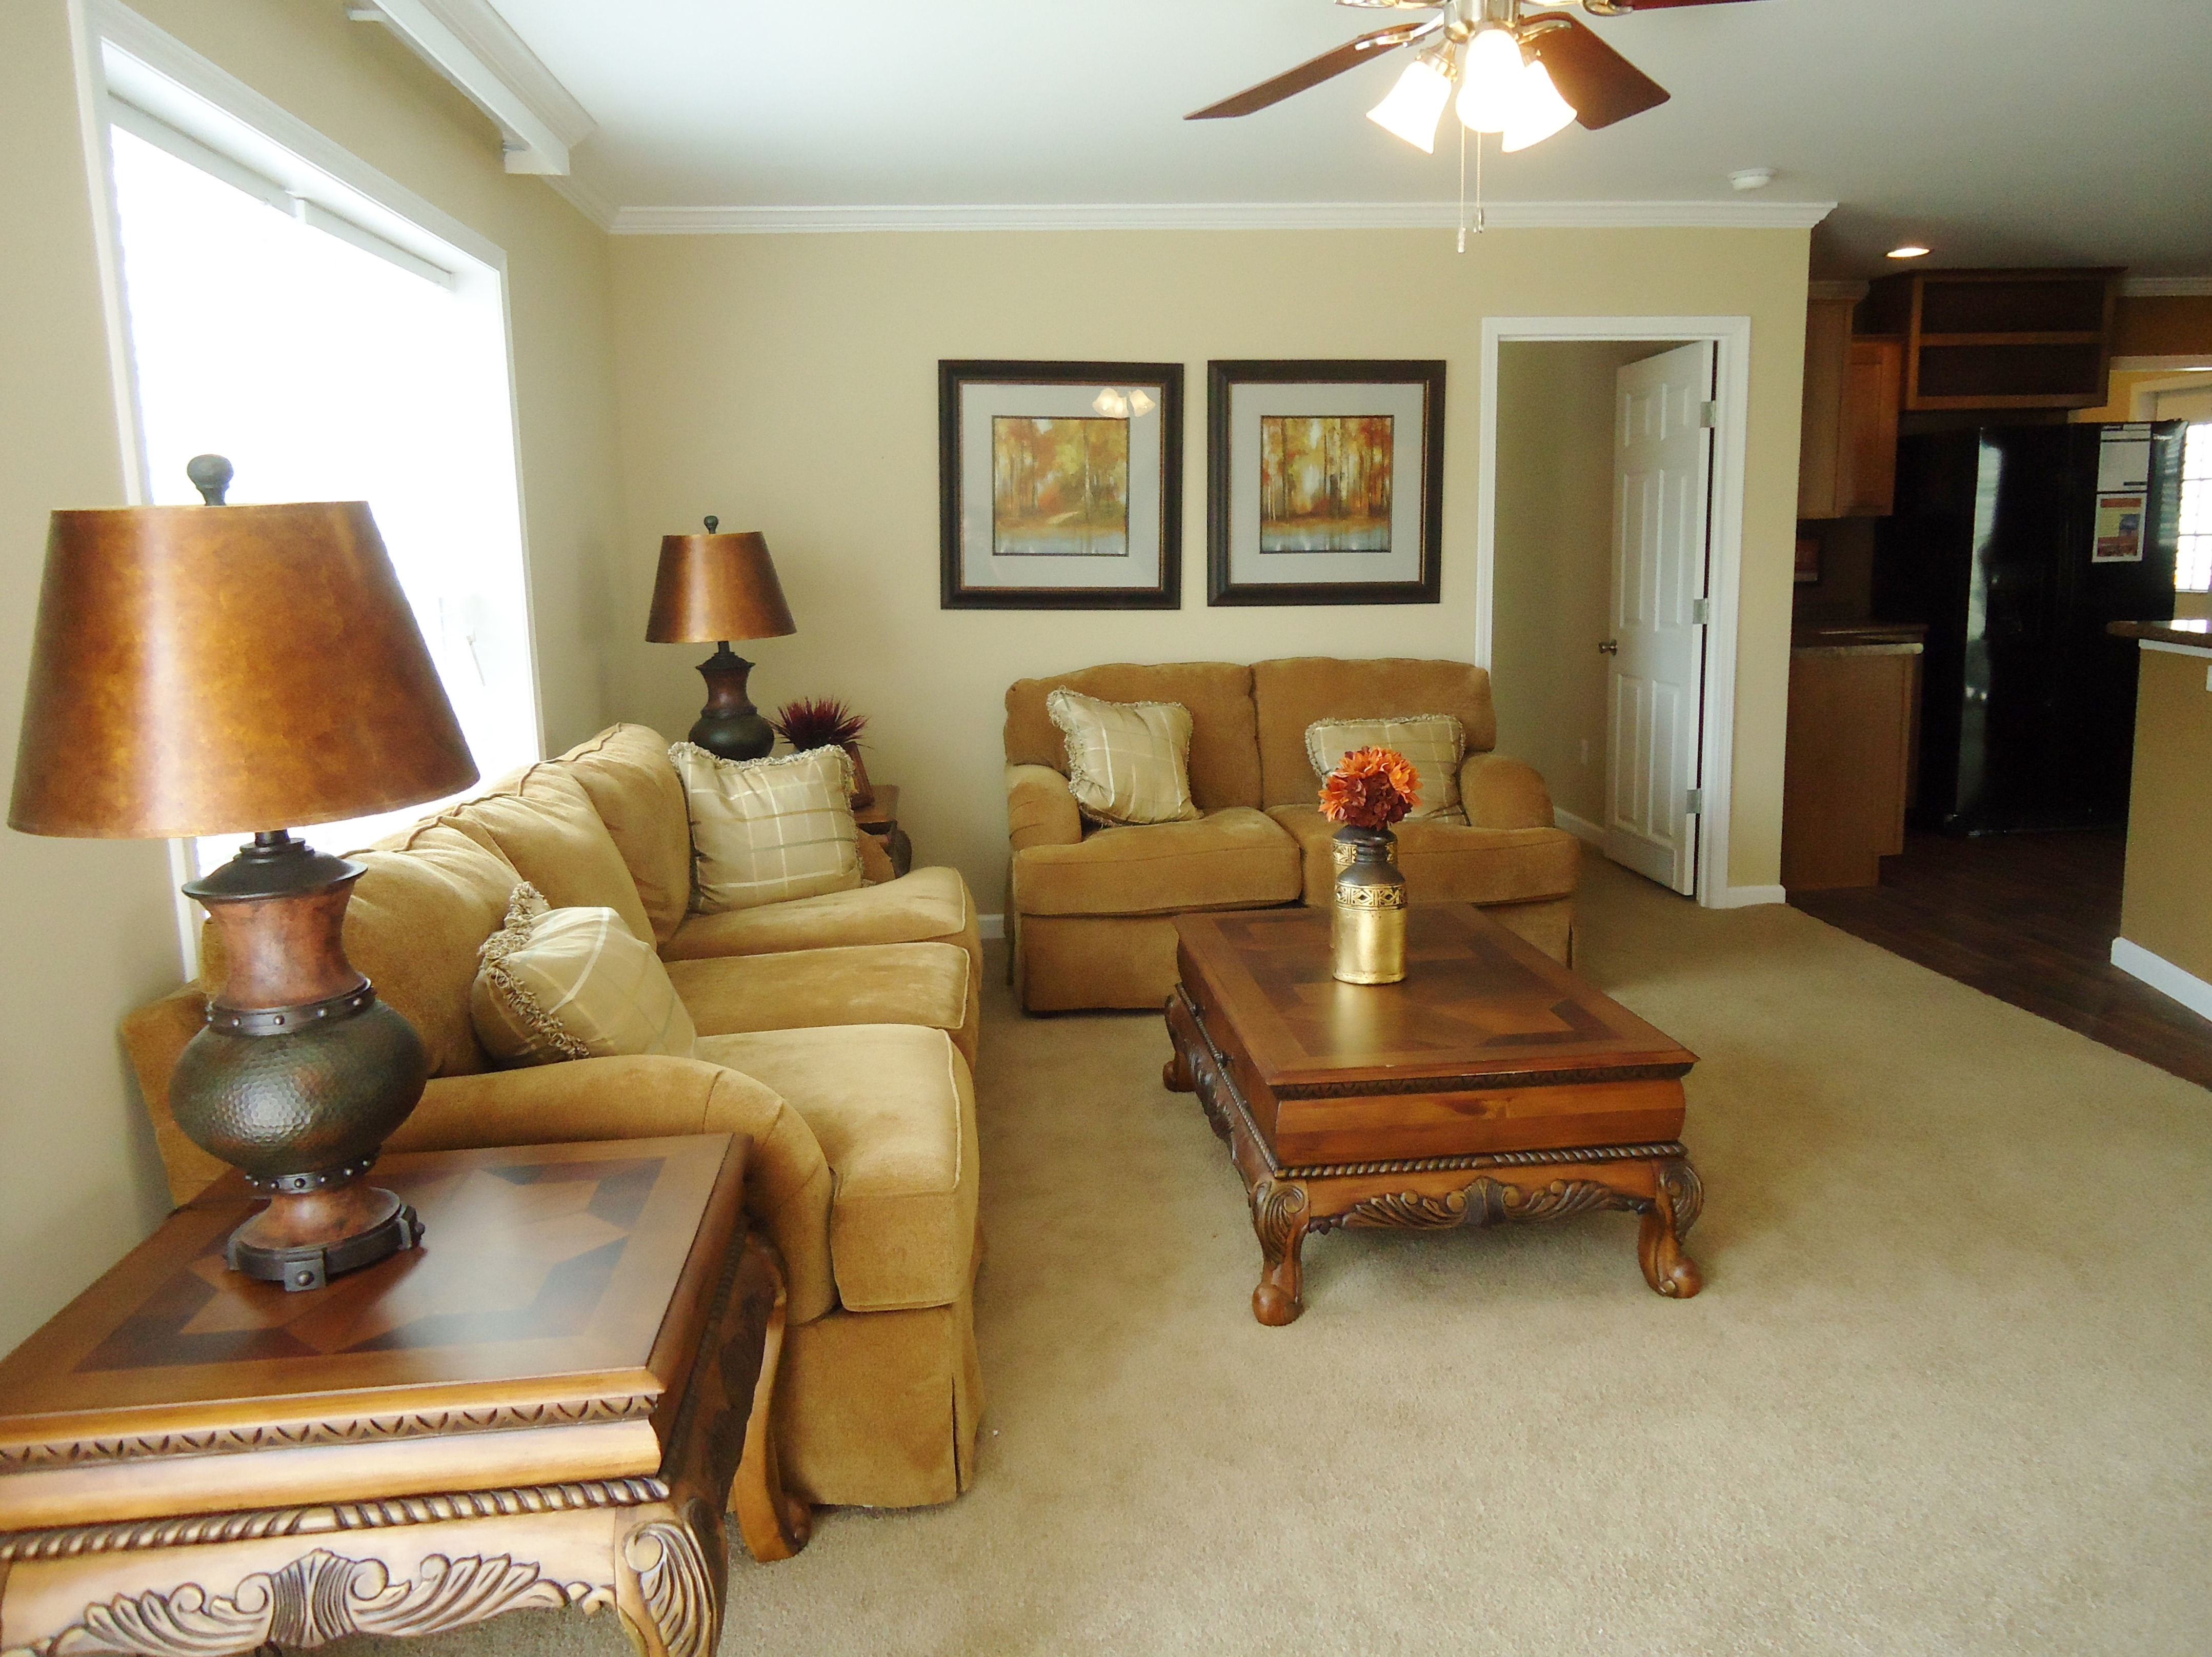 Clayton Homes 1440 Interstate Drive Cookeville, TN Mobile